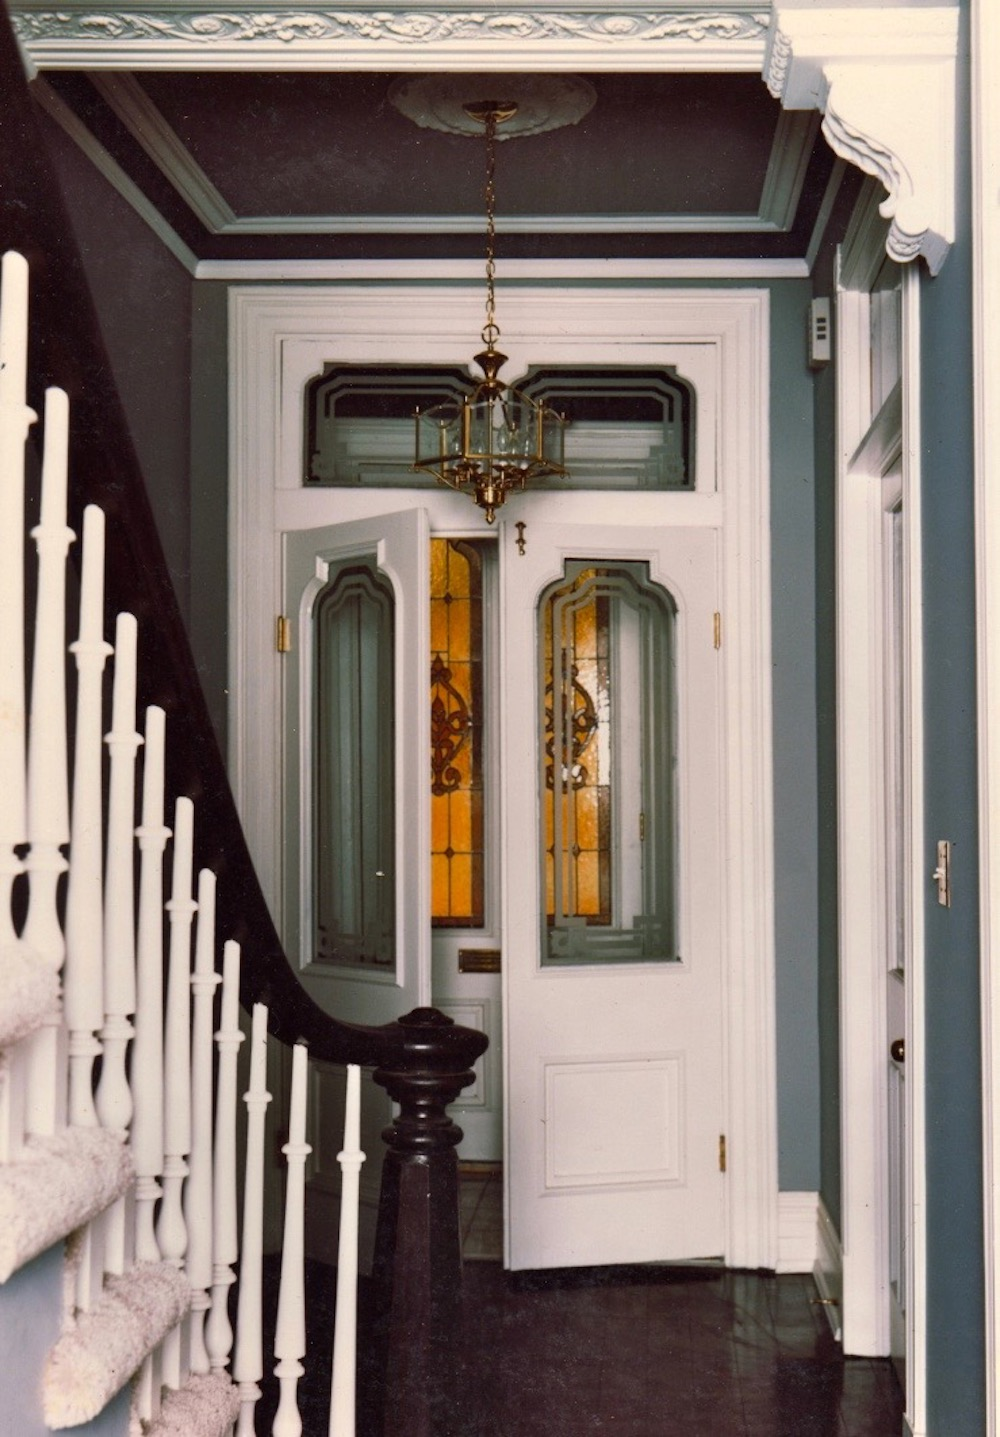 entry double door interior heritage railing stair.jpeg